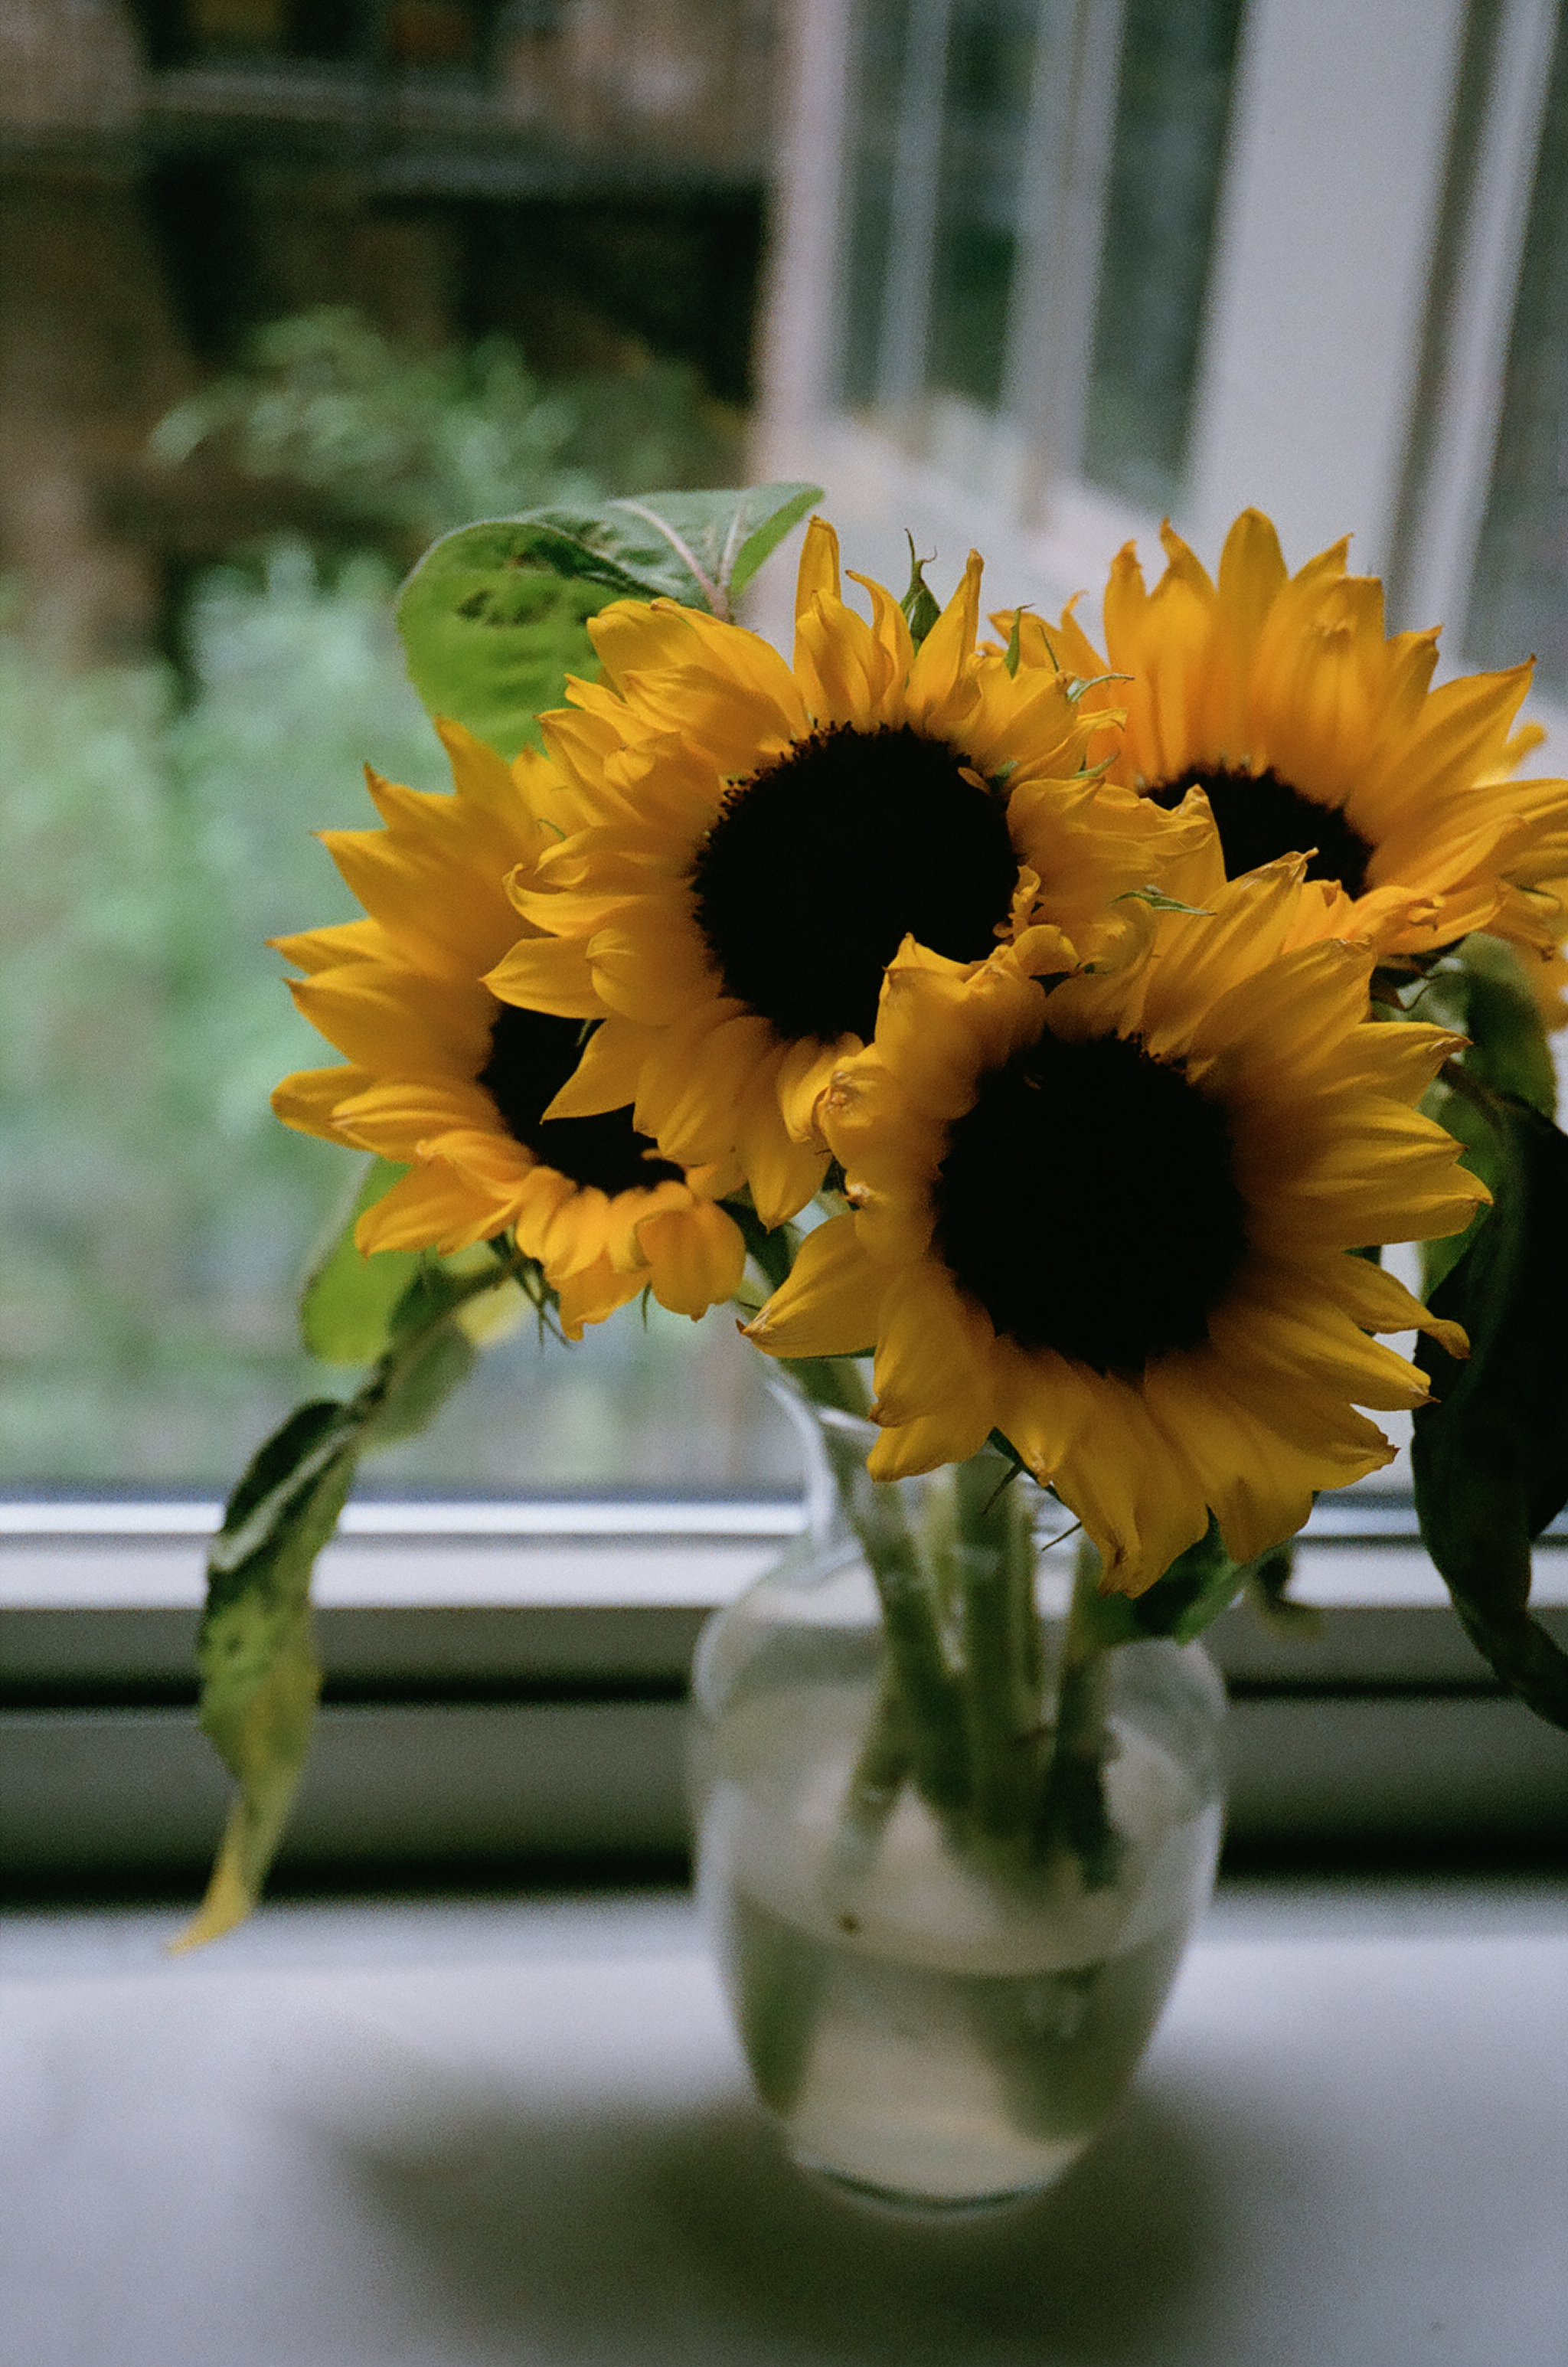 My favorite flowers, sunflowers